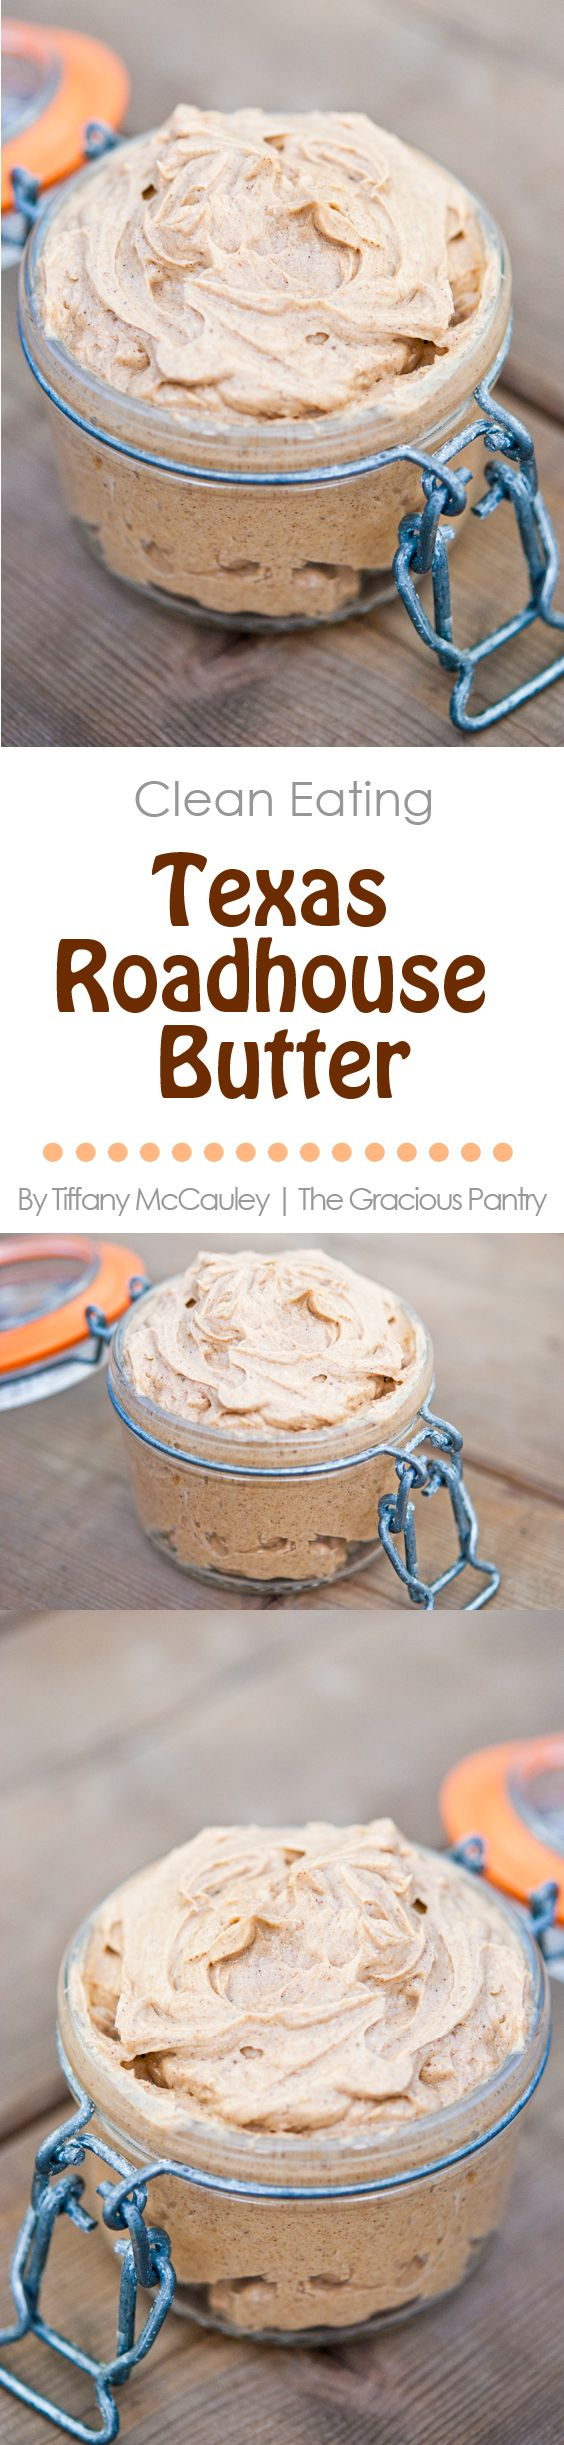 This sweet, delicious butter spread is the perfect sweet topping for toast, waffles, french toast or even pancakes! Pssst.... makes a great gift too!